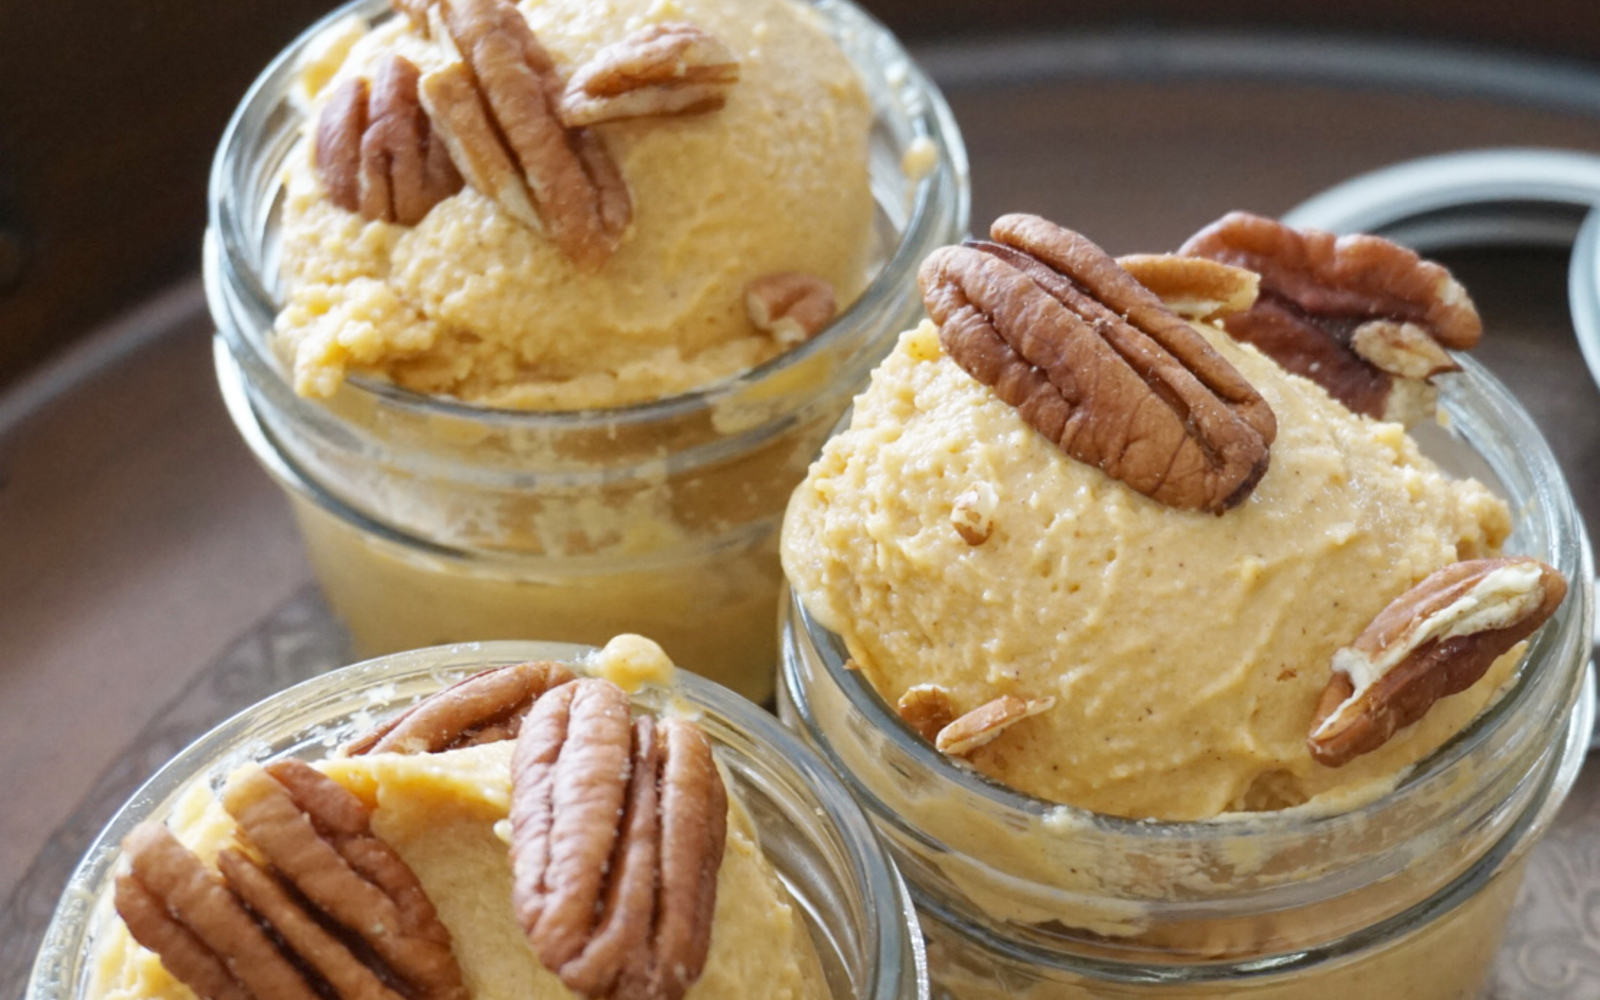 Vegan Sweet Potato Ice Cream